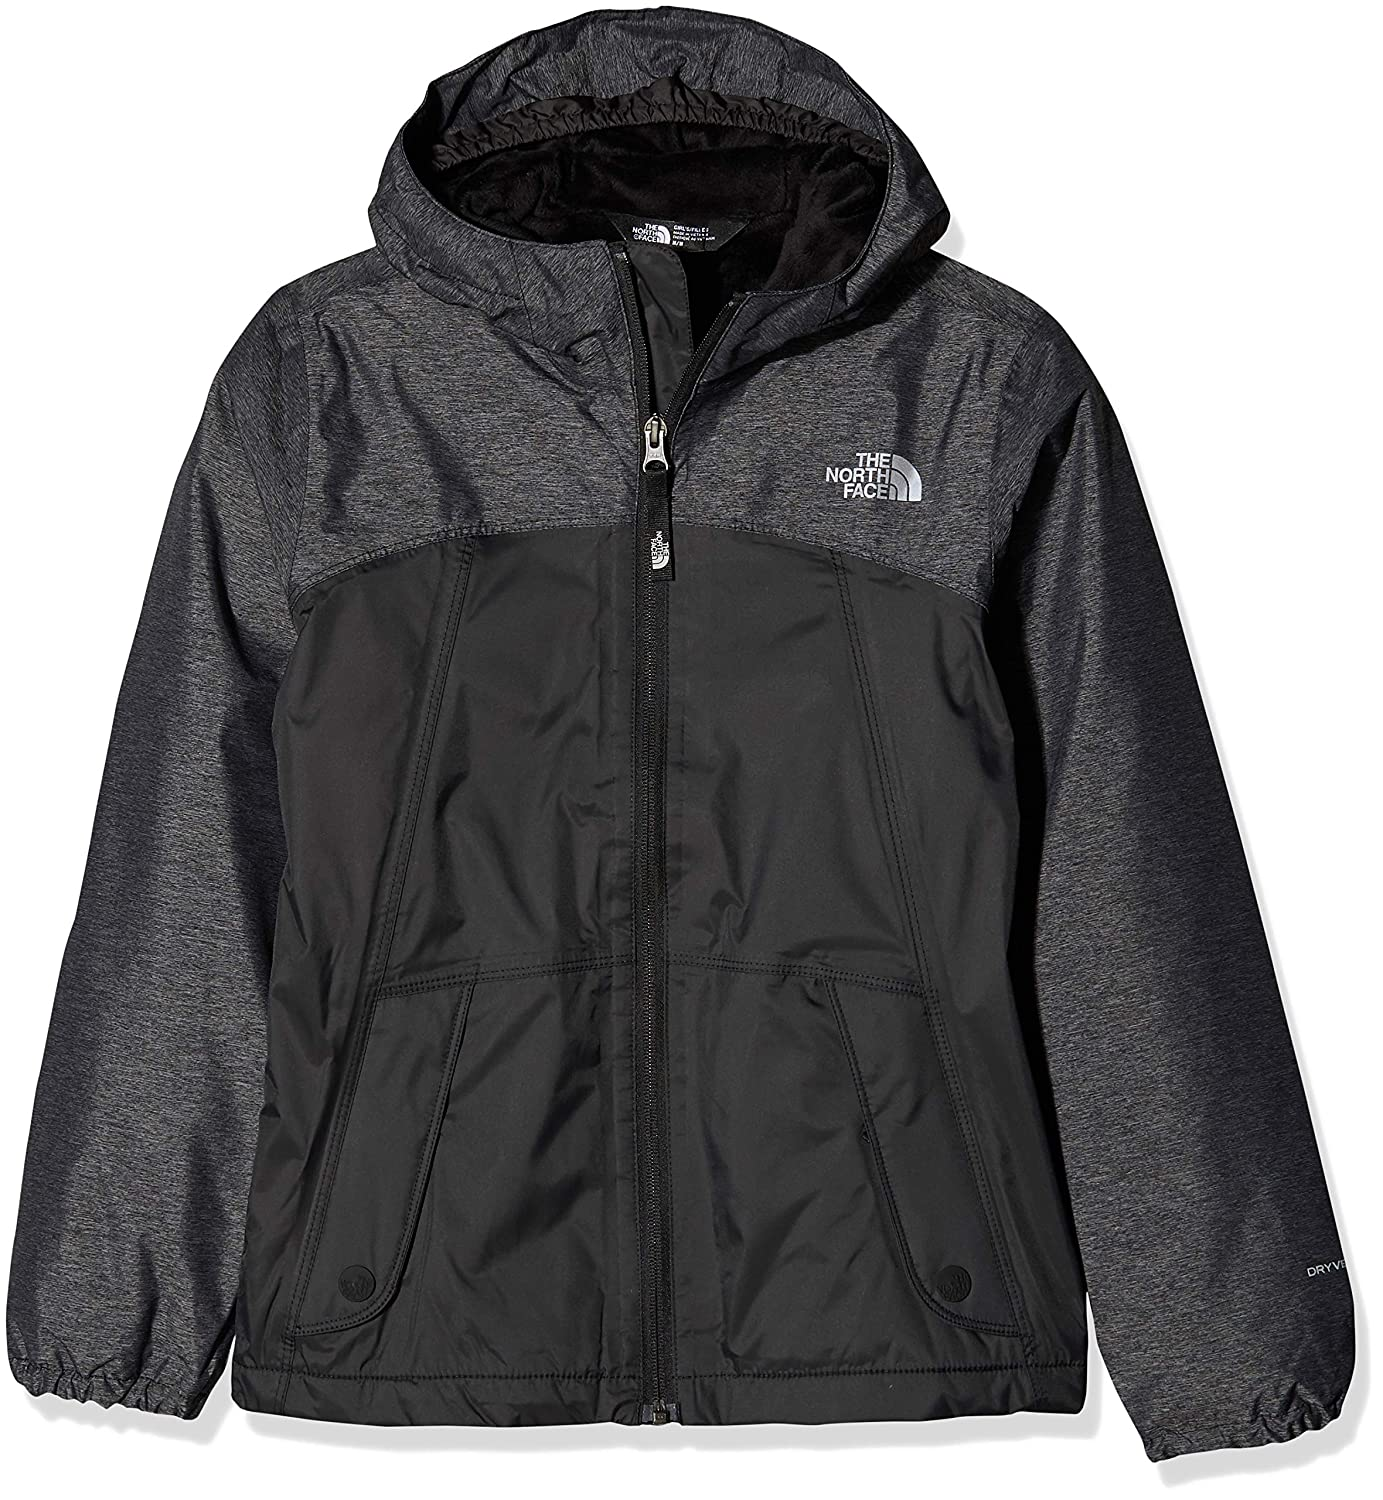 THE NORTH FACE Mä dchen Warm Storm Jacke T934UXJK3